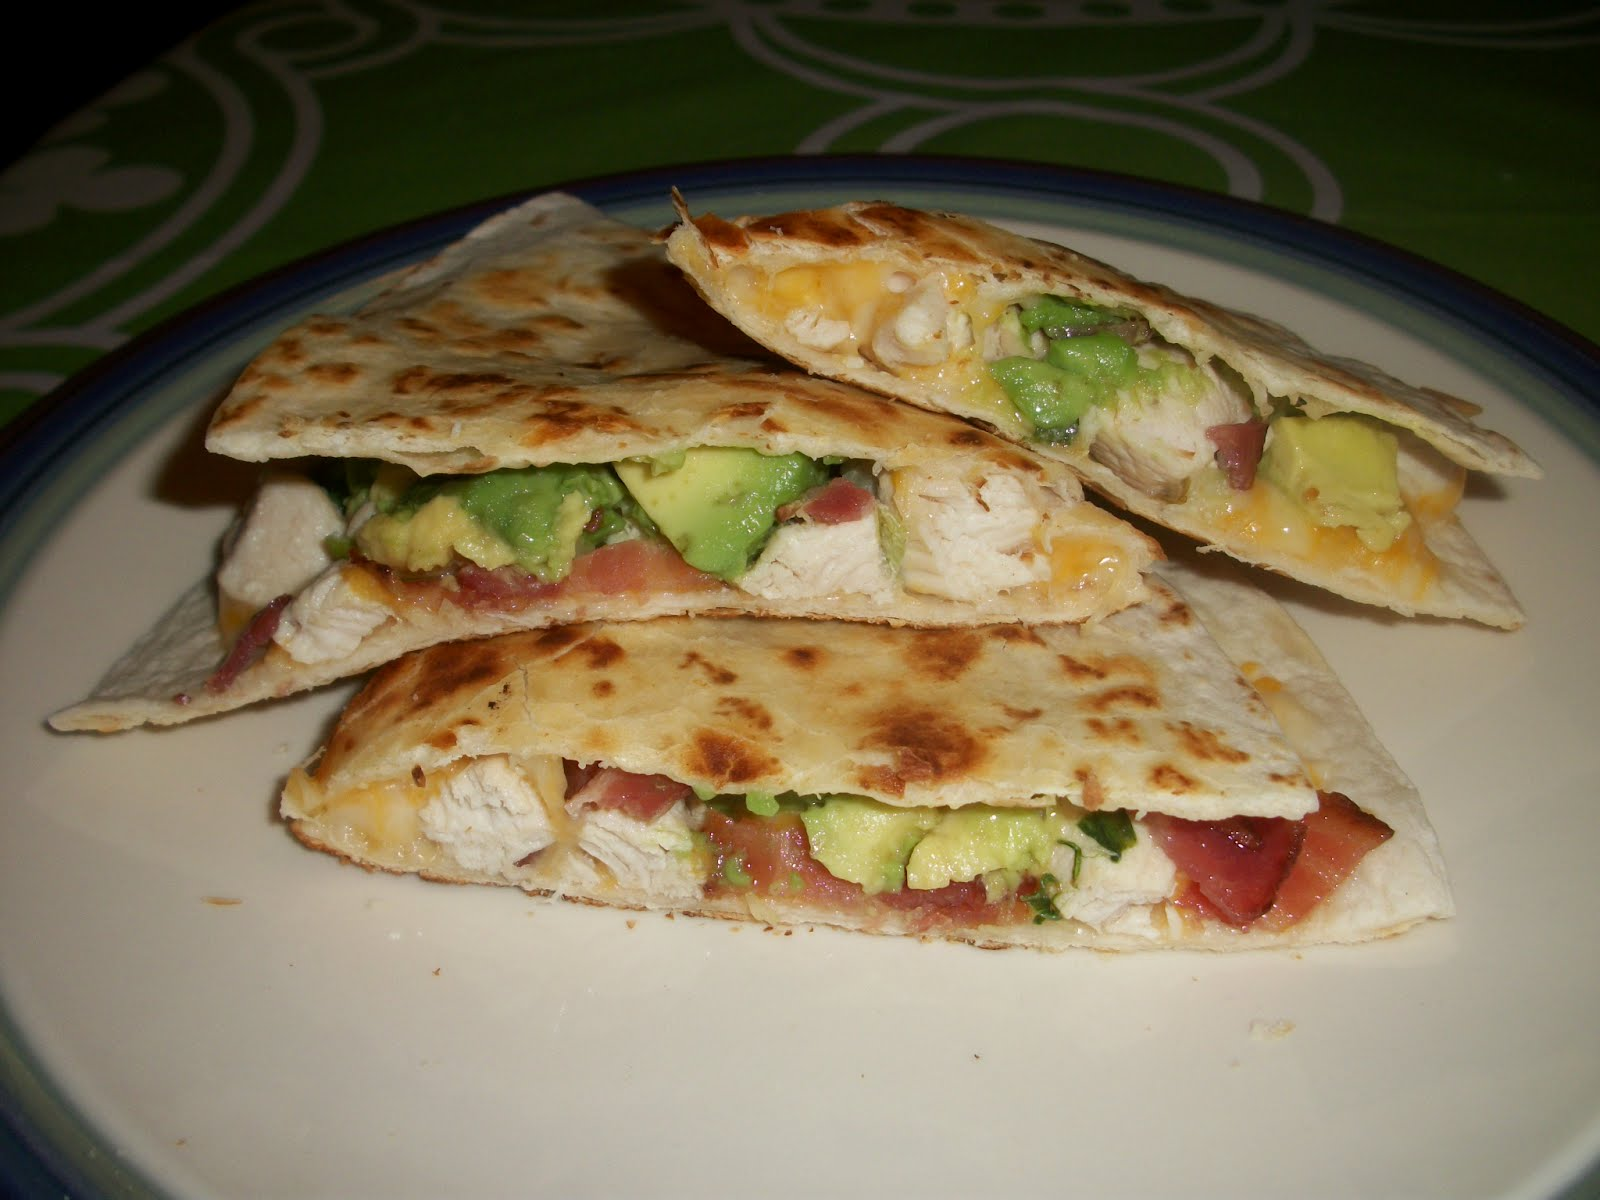 ... avocado sauce quesadillas quesadillas chicken quesadillas quesadillas